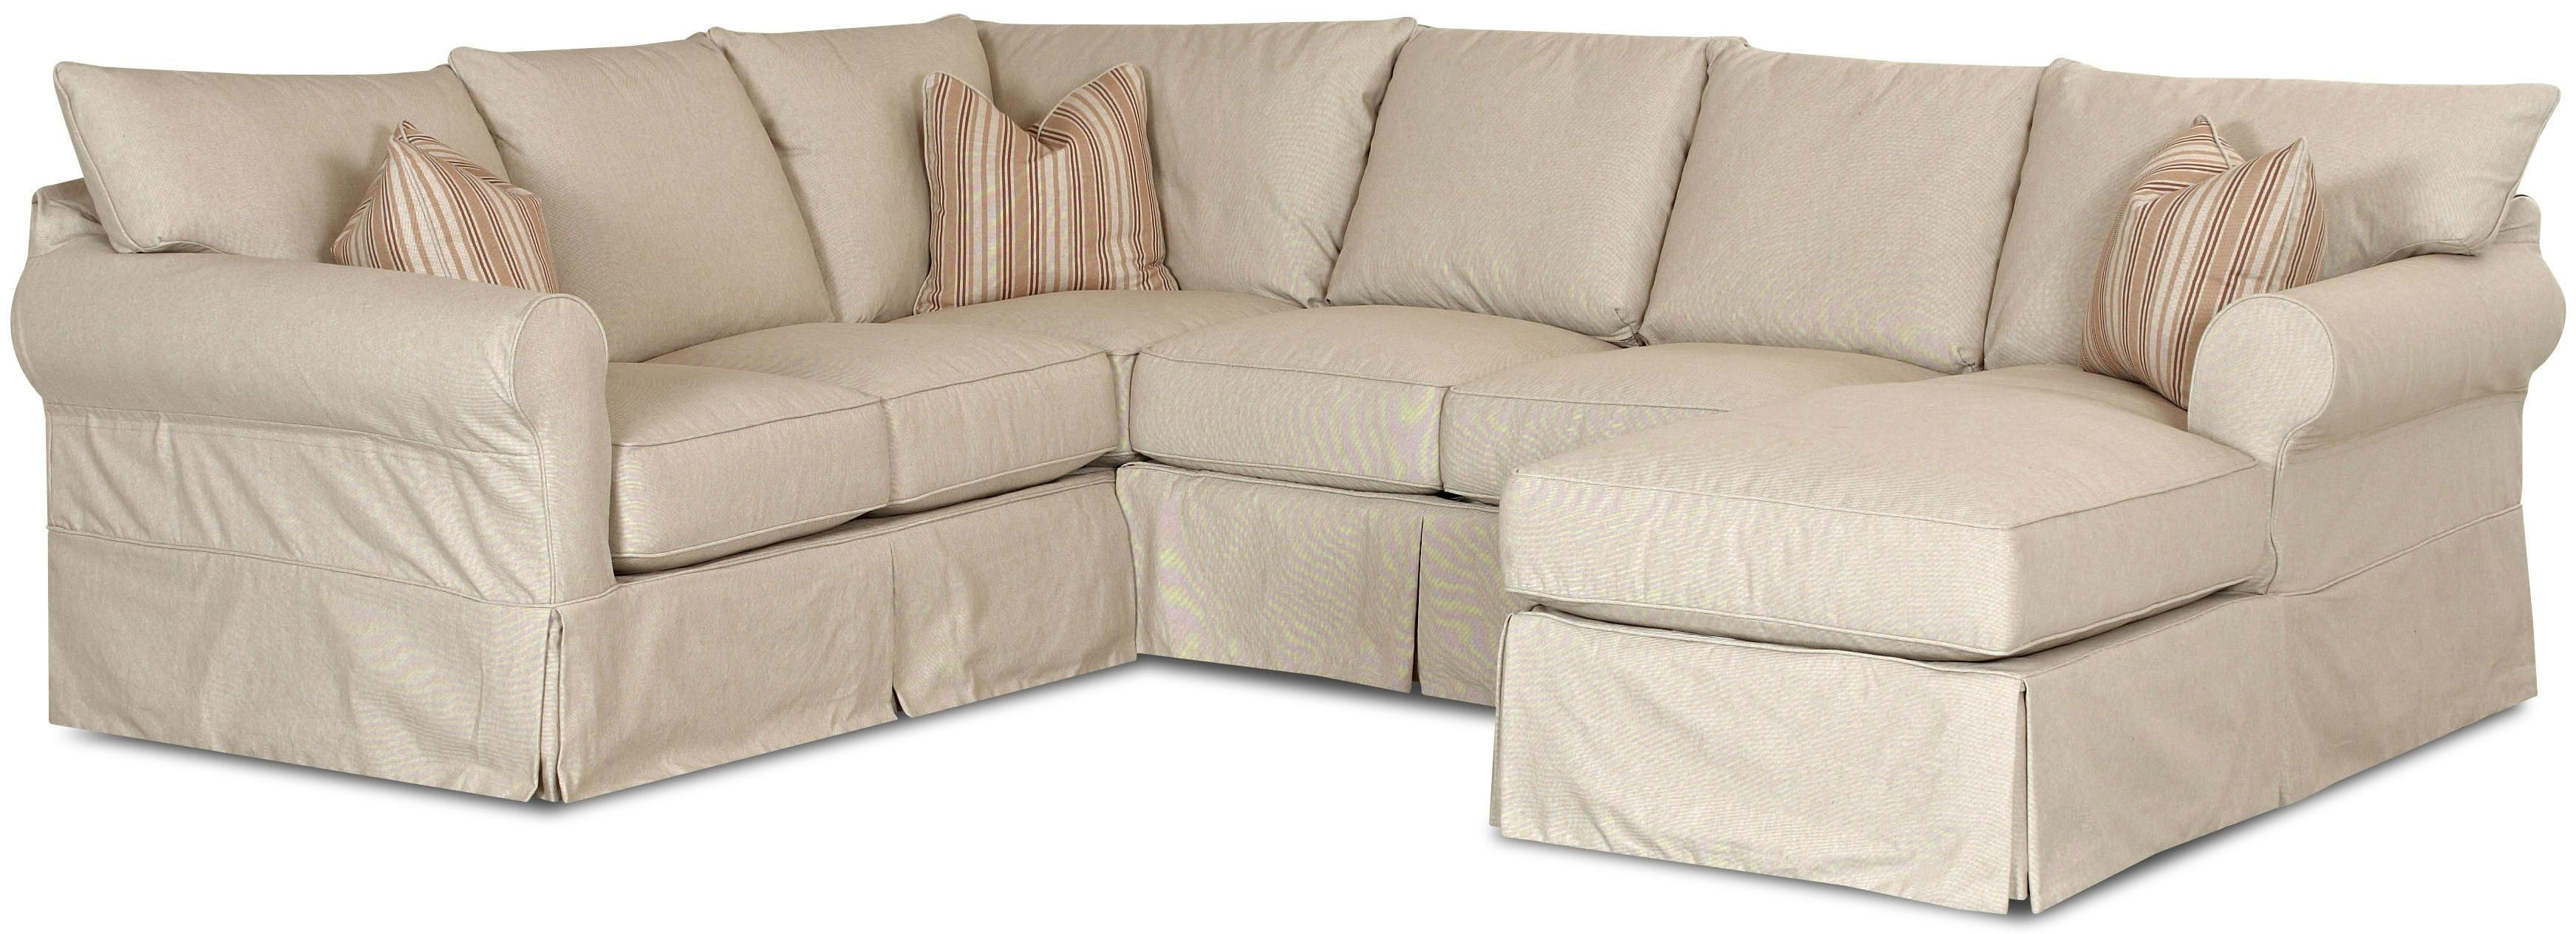 Featured Photo of Sofas Cover For Sectional Sofas